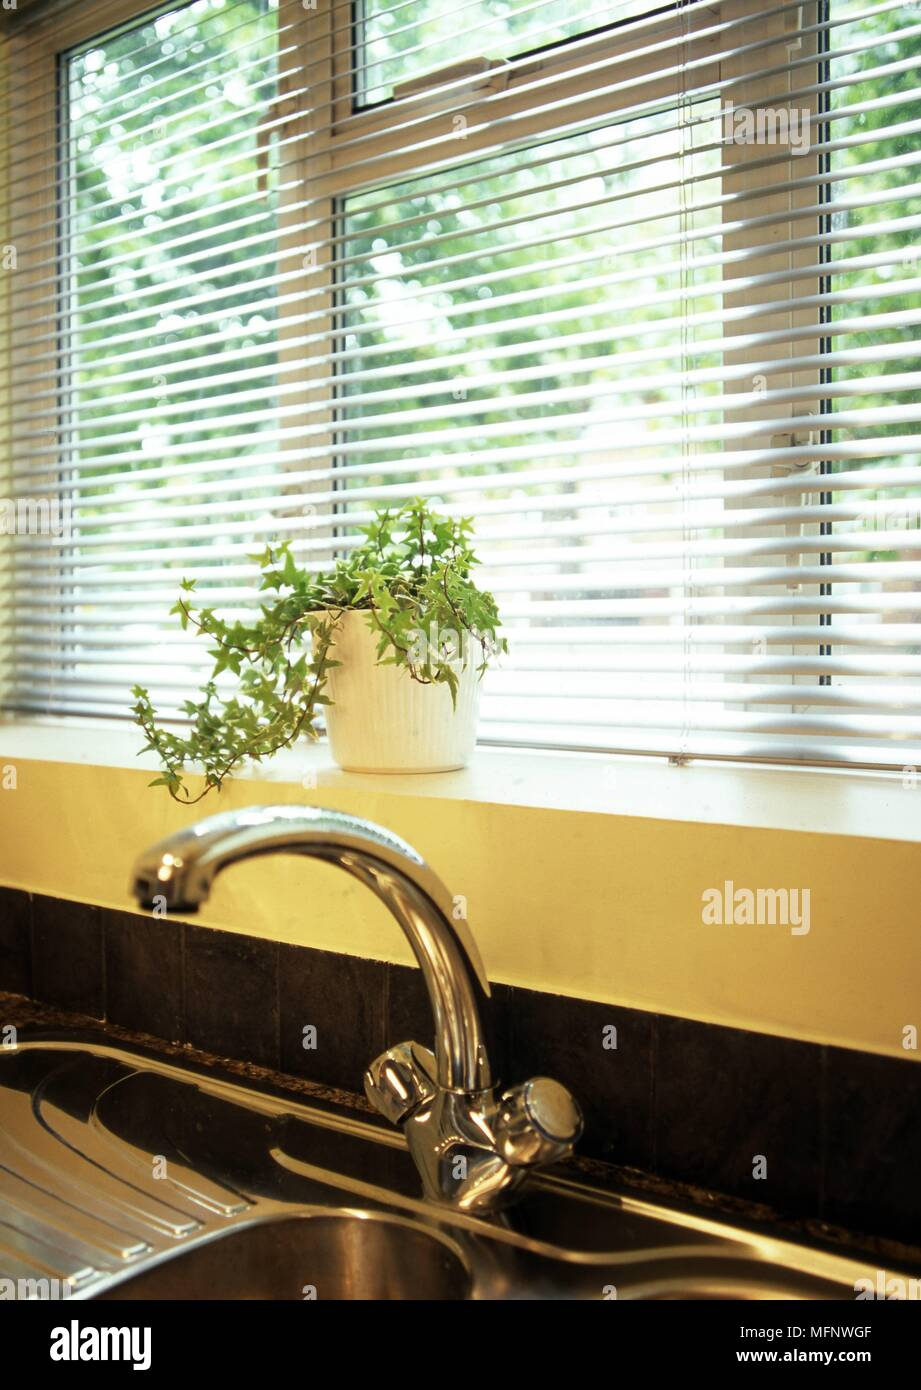 Kitchen sink and a potted plant ref crb499 103524 0003 compulsory credit rachael smith photoshot